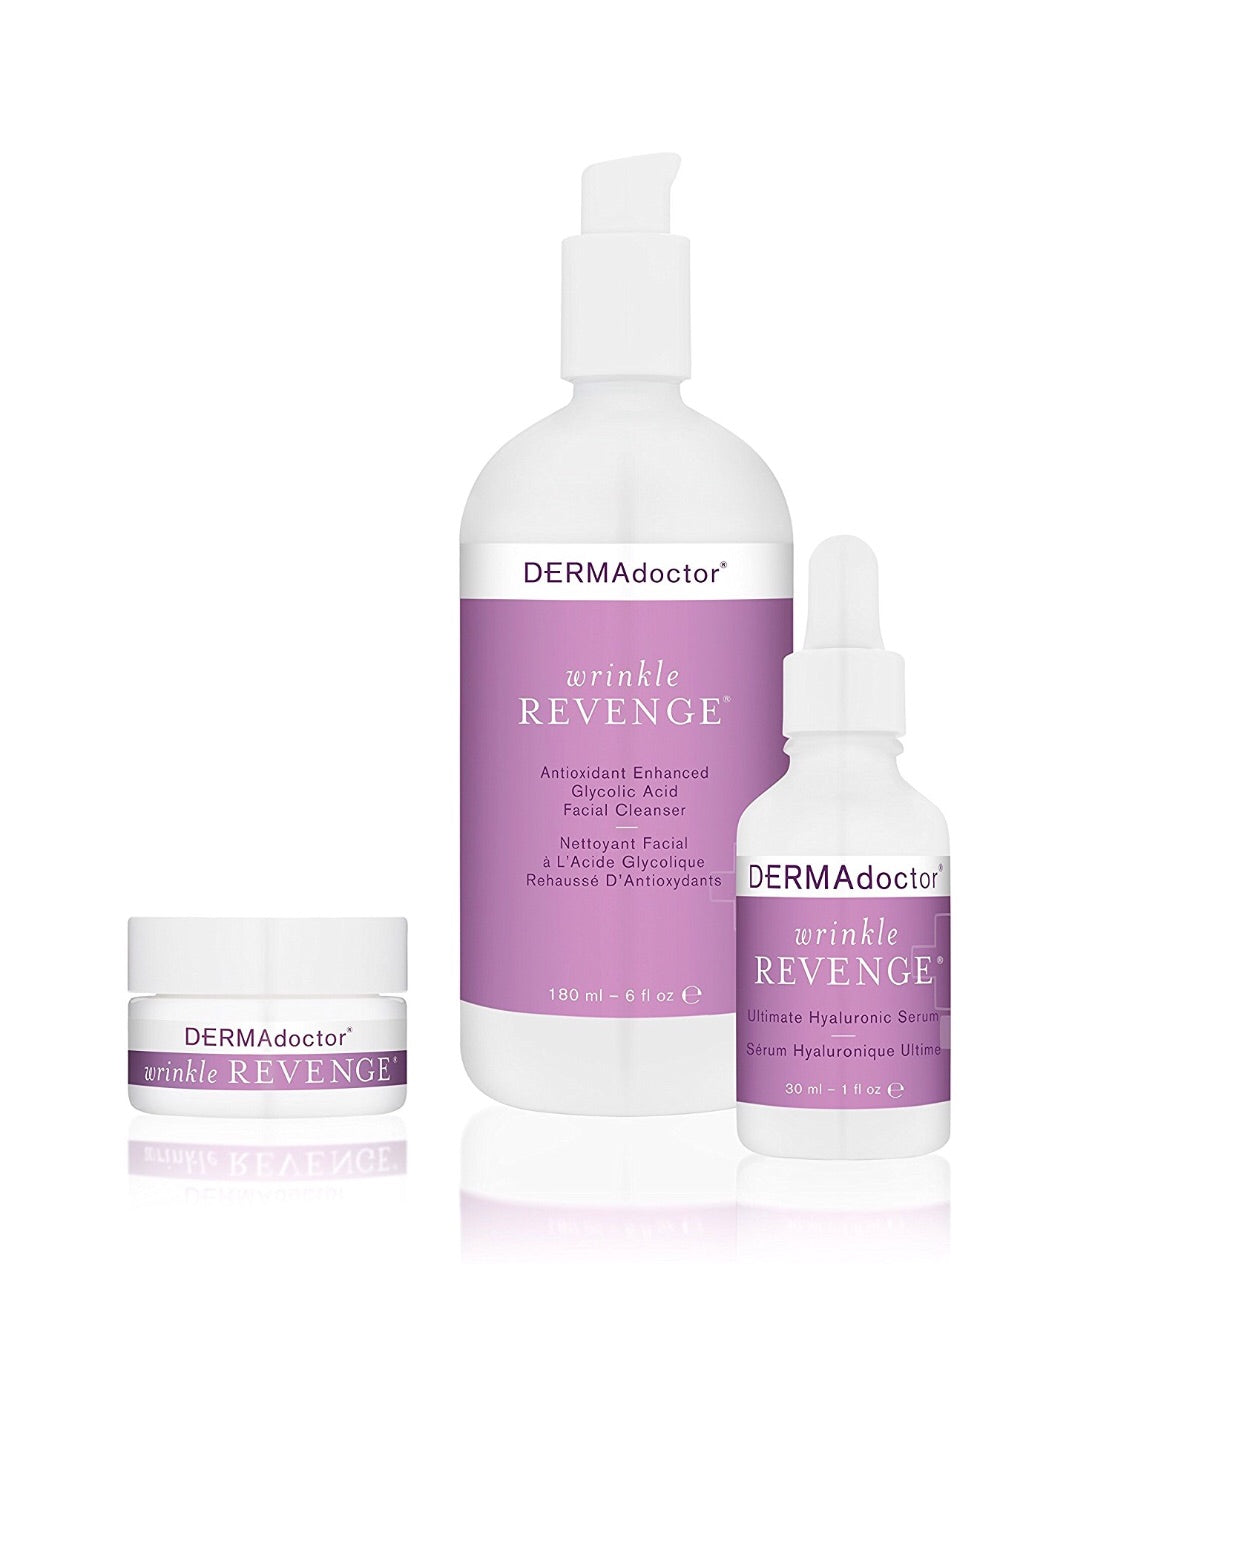 DERMAdoctor Wrinkle Revenge Cleanser, Serum & Eye Trio